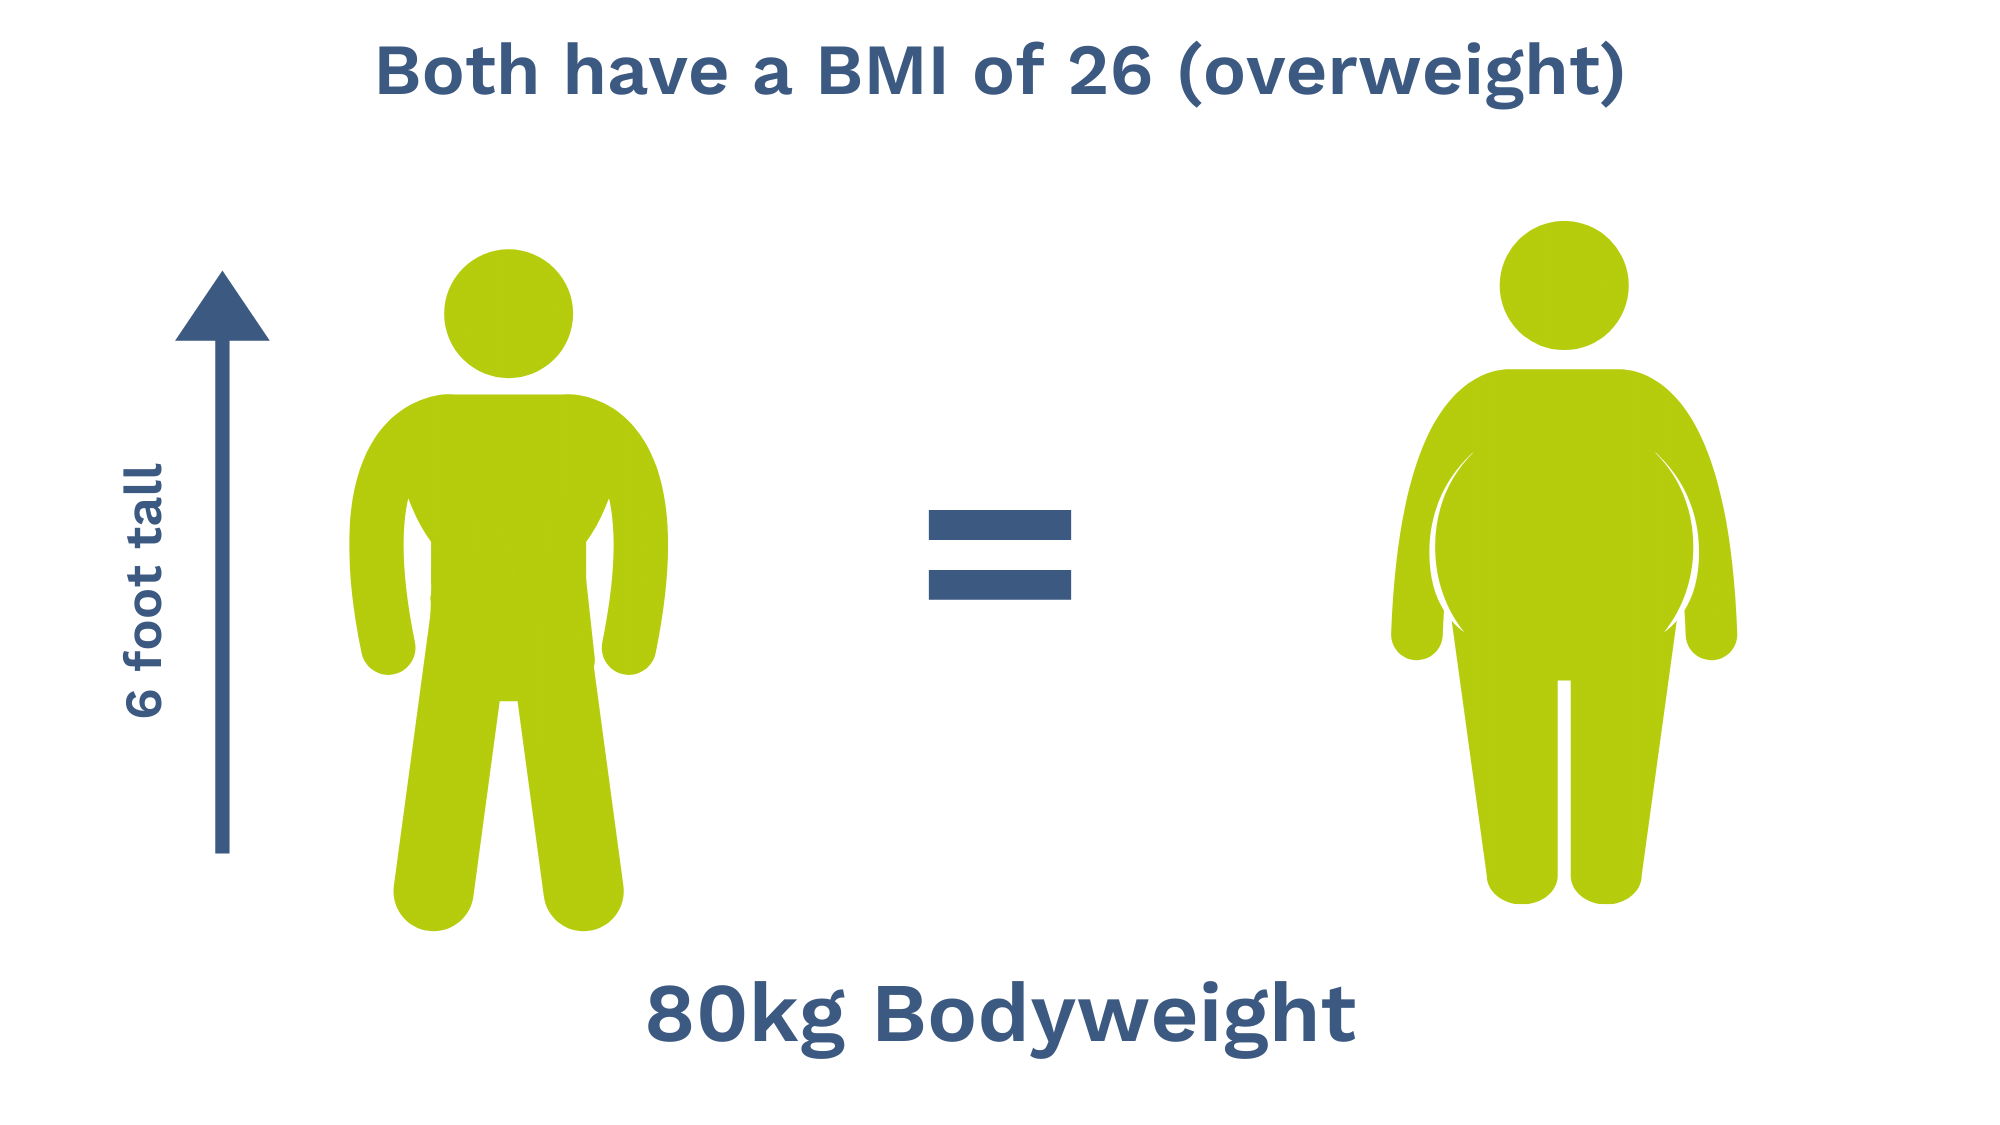 BMI lifestyle comparrison